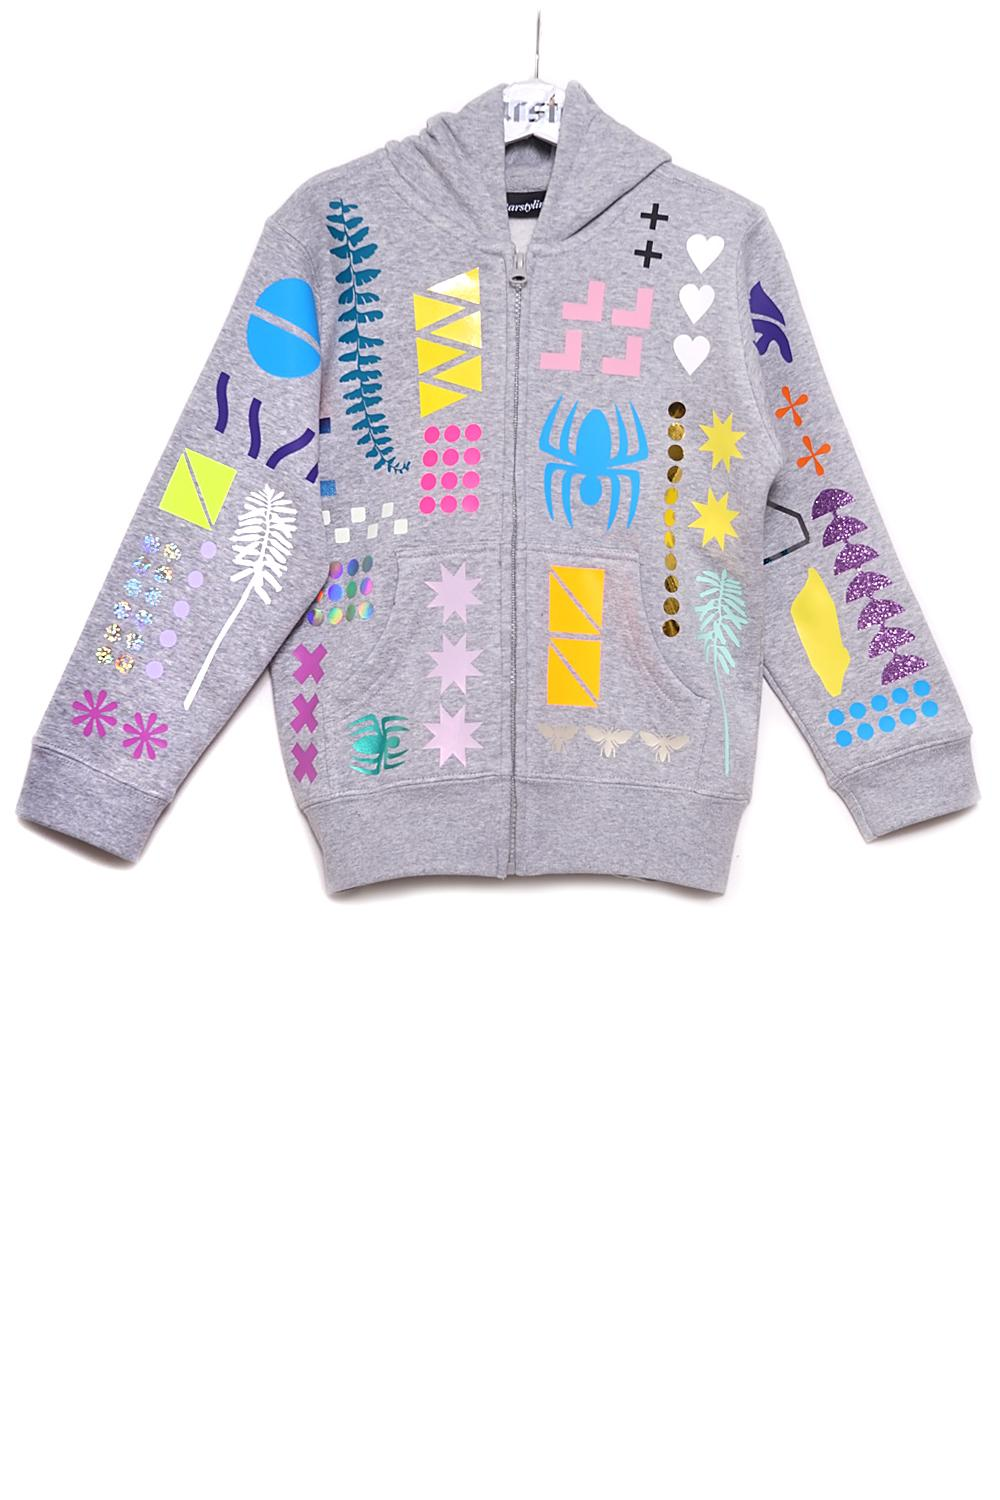 Everything Allover Zip Jacket Kids - 1